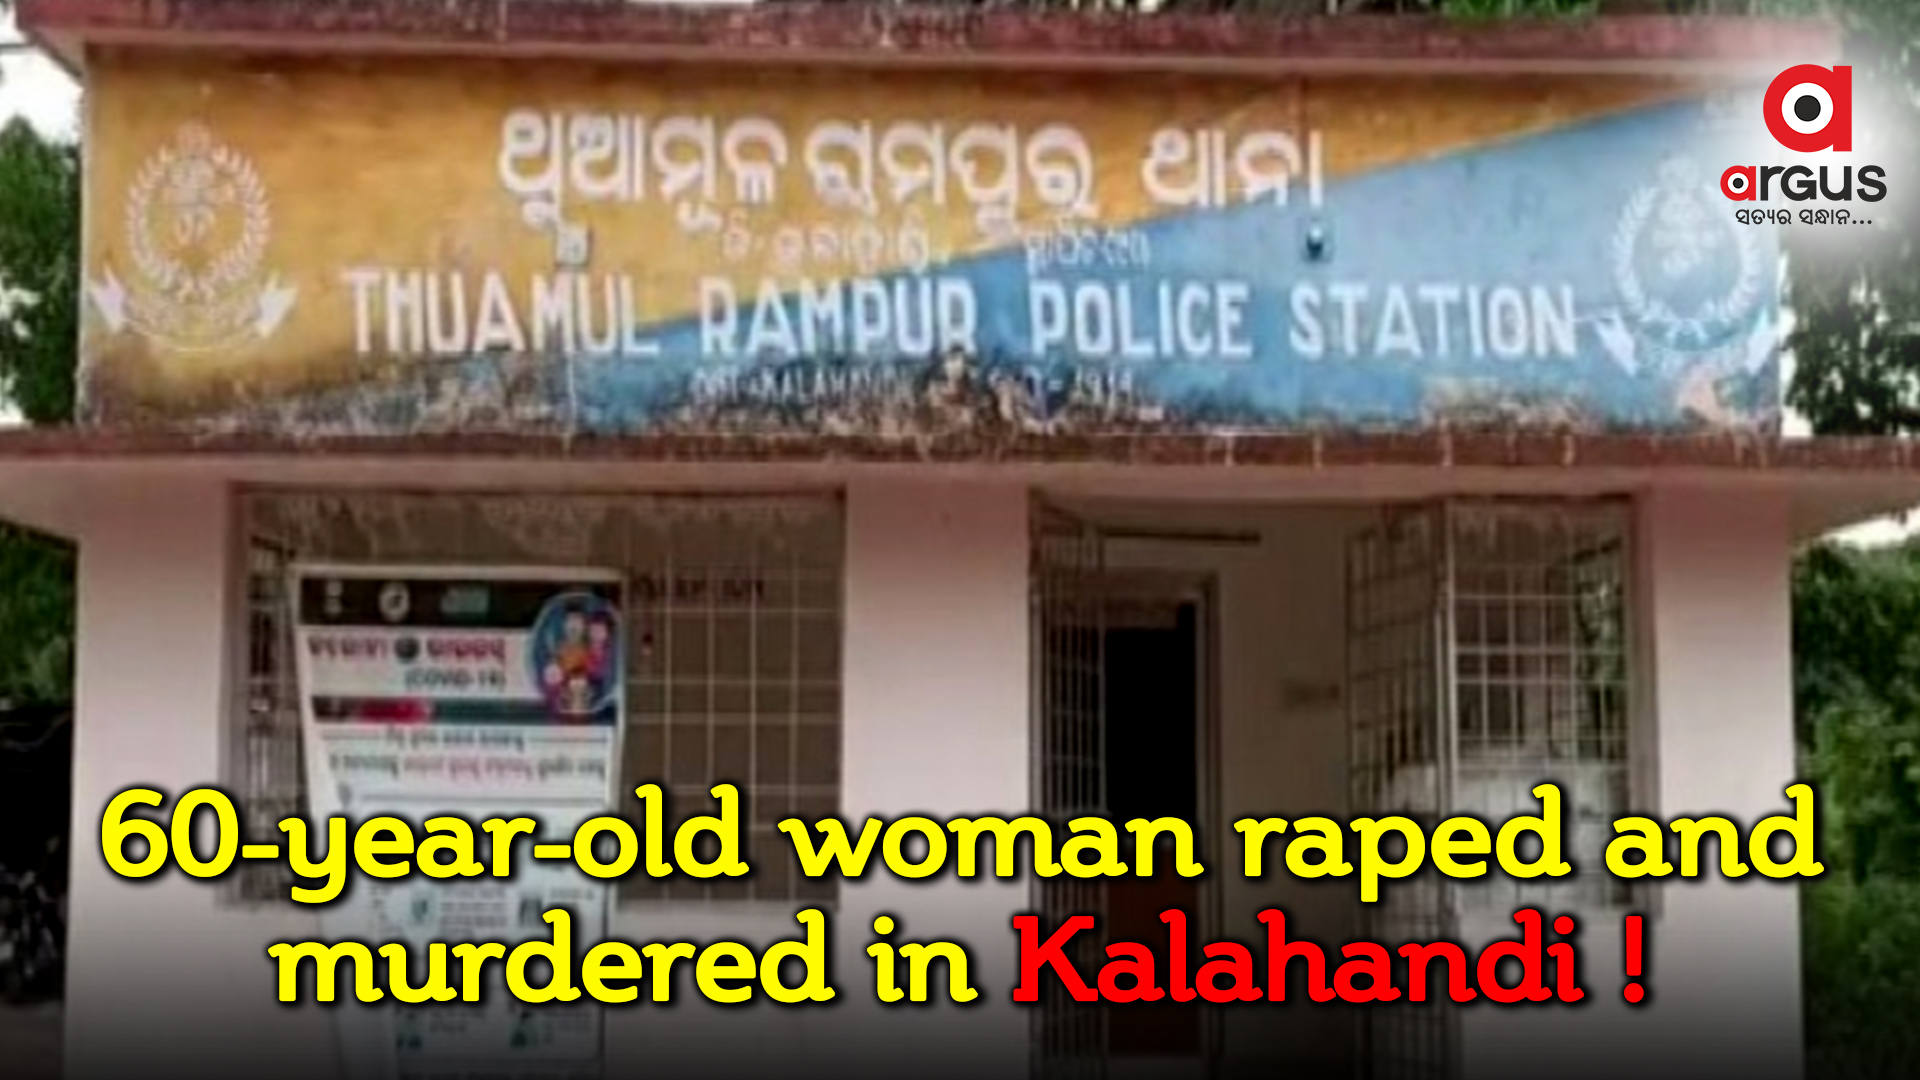 Body of elderly woman found in Kalahandi; family alleges murder after rape